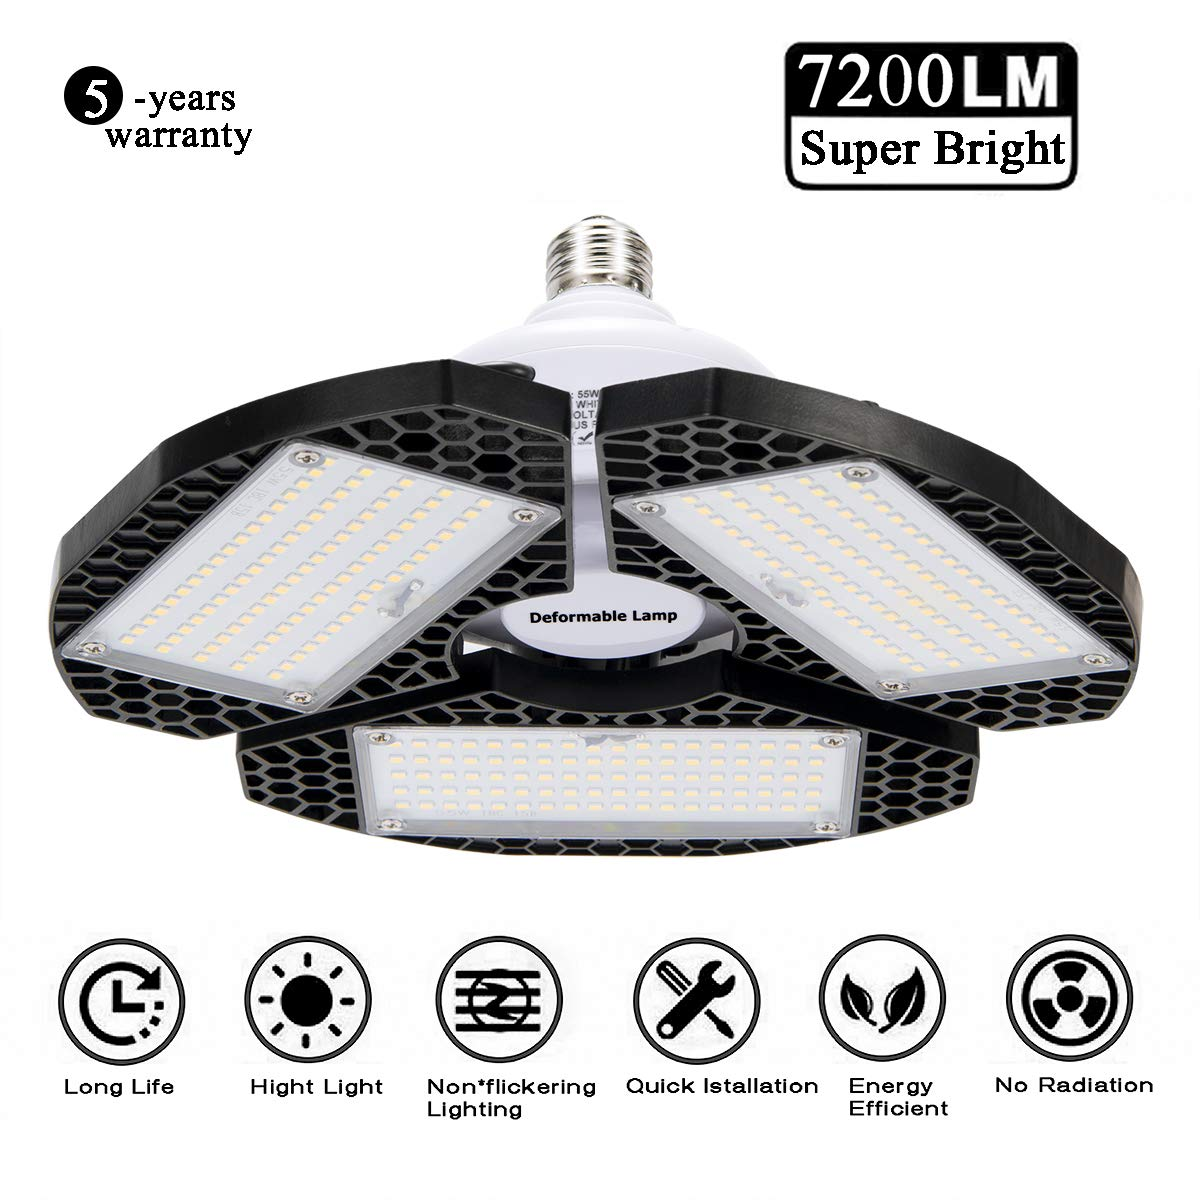 LED Garage Lights, Deformable LED Garage Ceiling Lights 72000 Lumens, CRI 80 Shop Lights for Garage,Ultra-Bright Mining Lamps with 3 Adjustable Panels,Working Light 、LED Light Bulbs for barn etc.